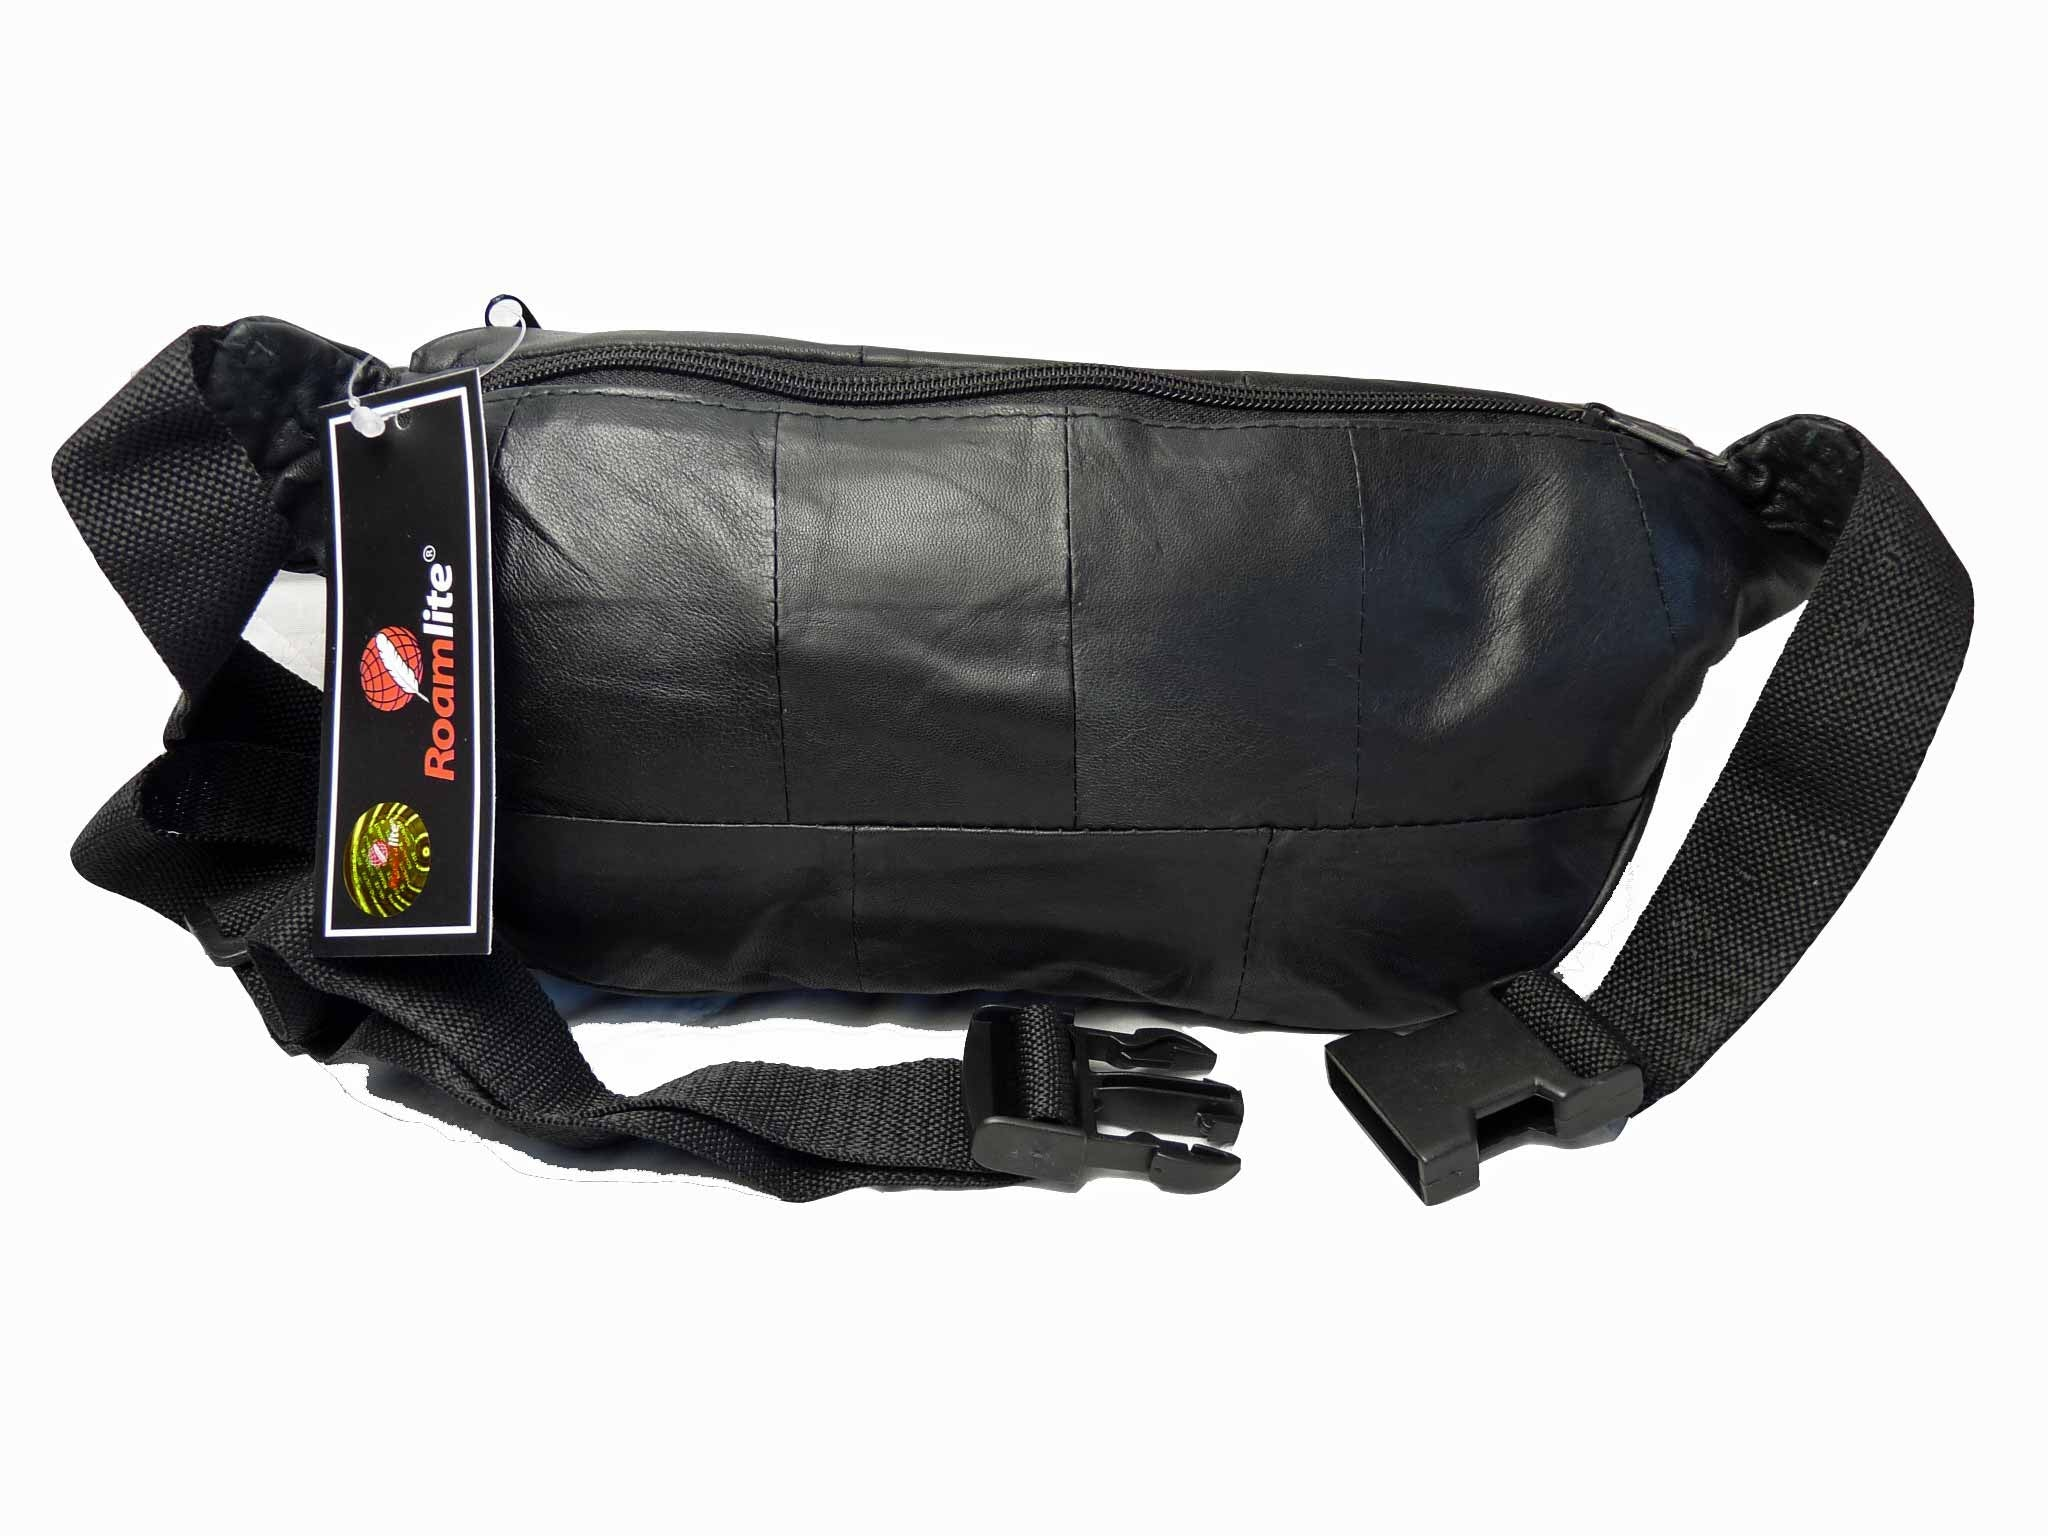 Leather Bumbag Soft Leather Black Bum Bag RL142 REAR VIEW